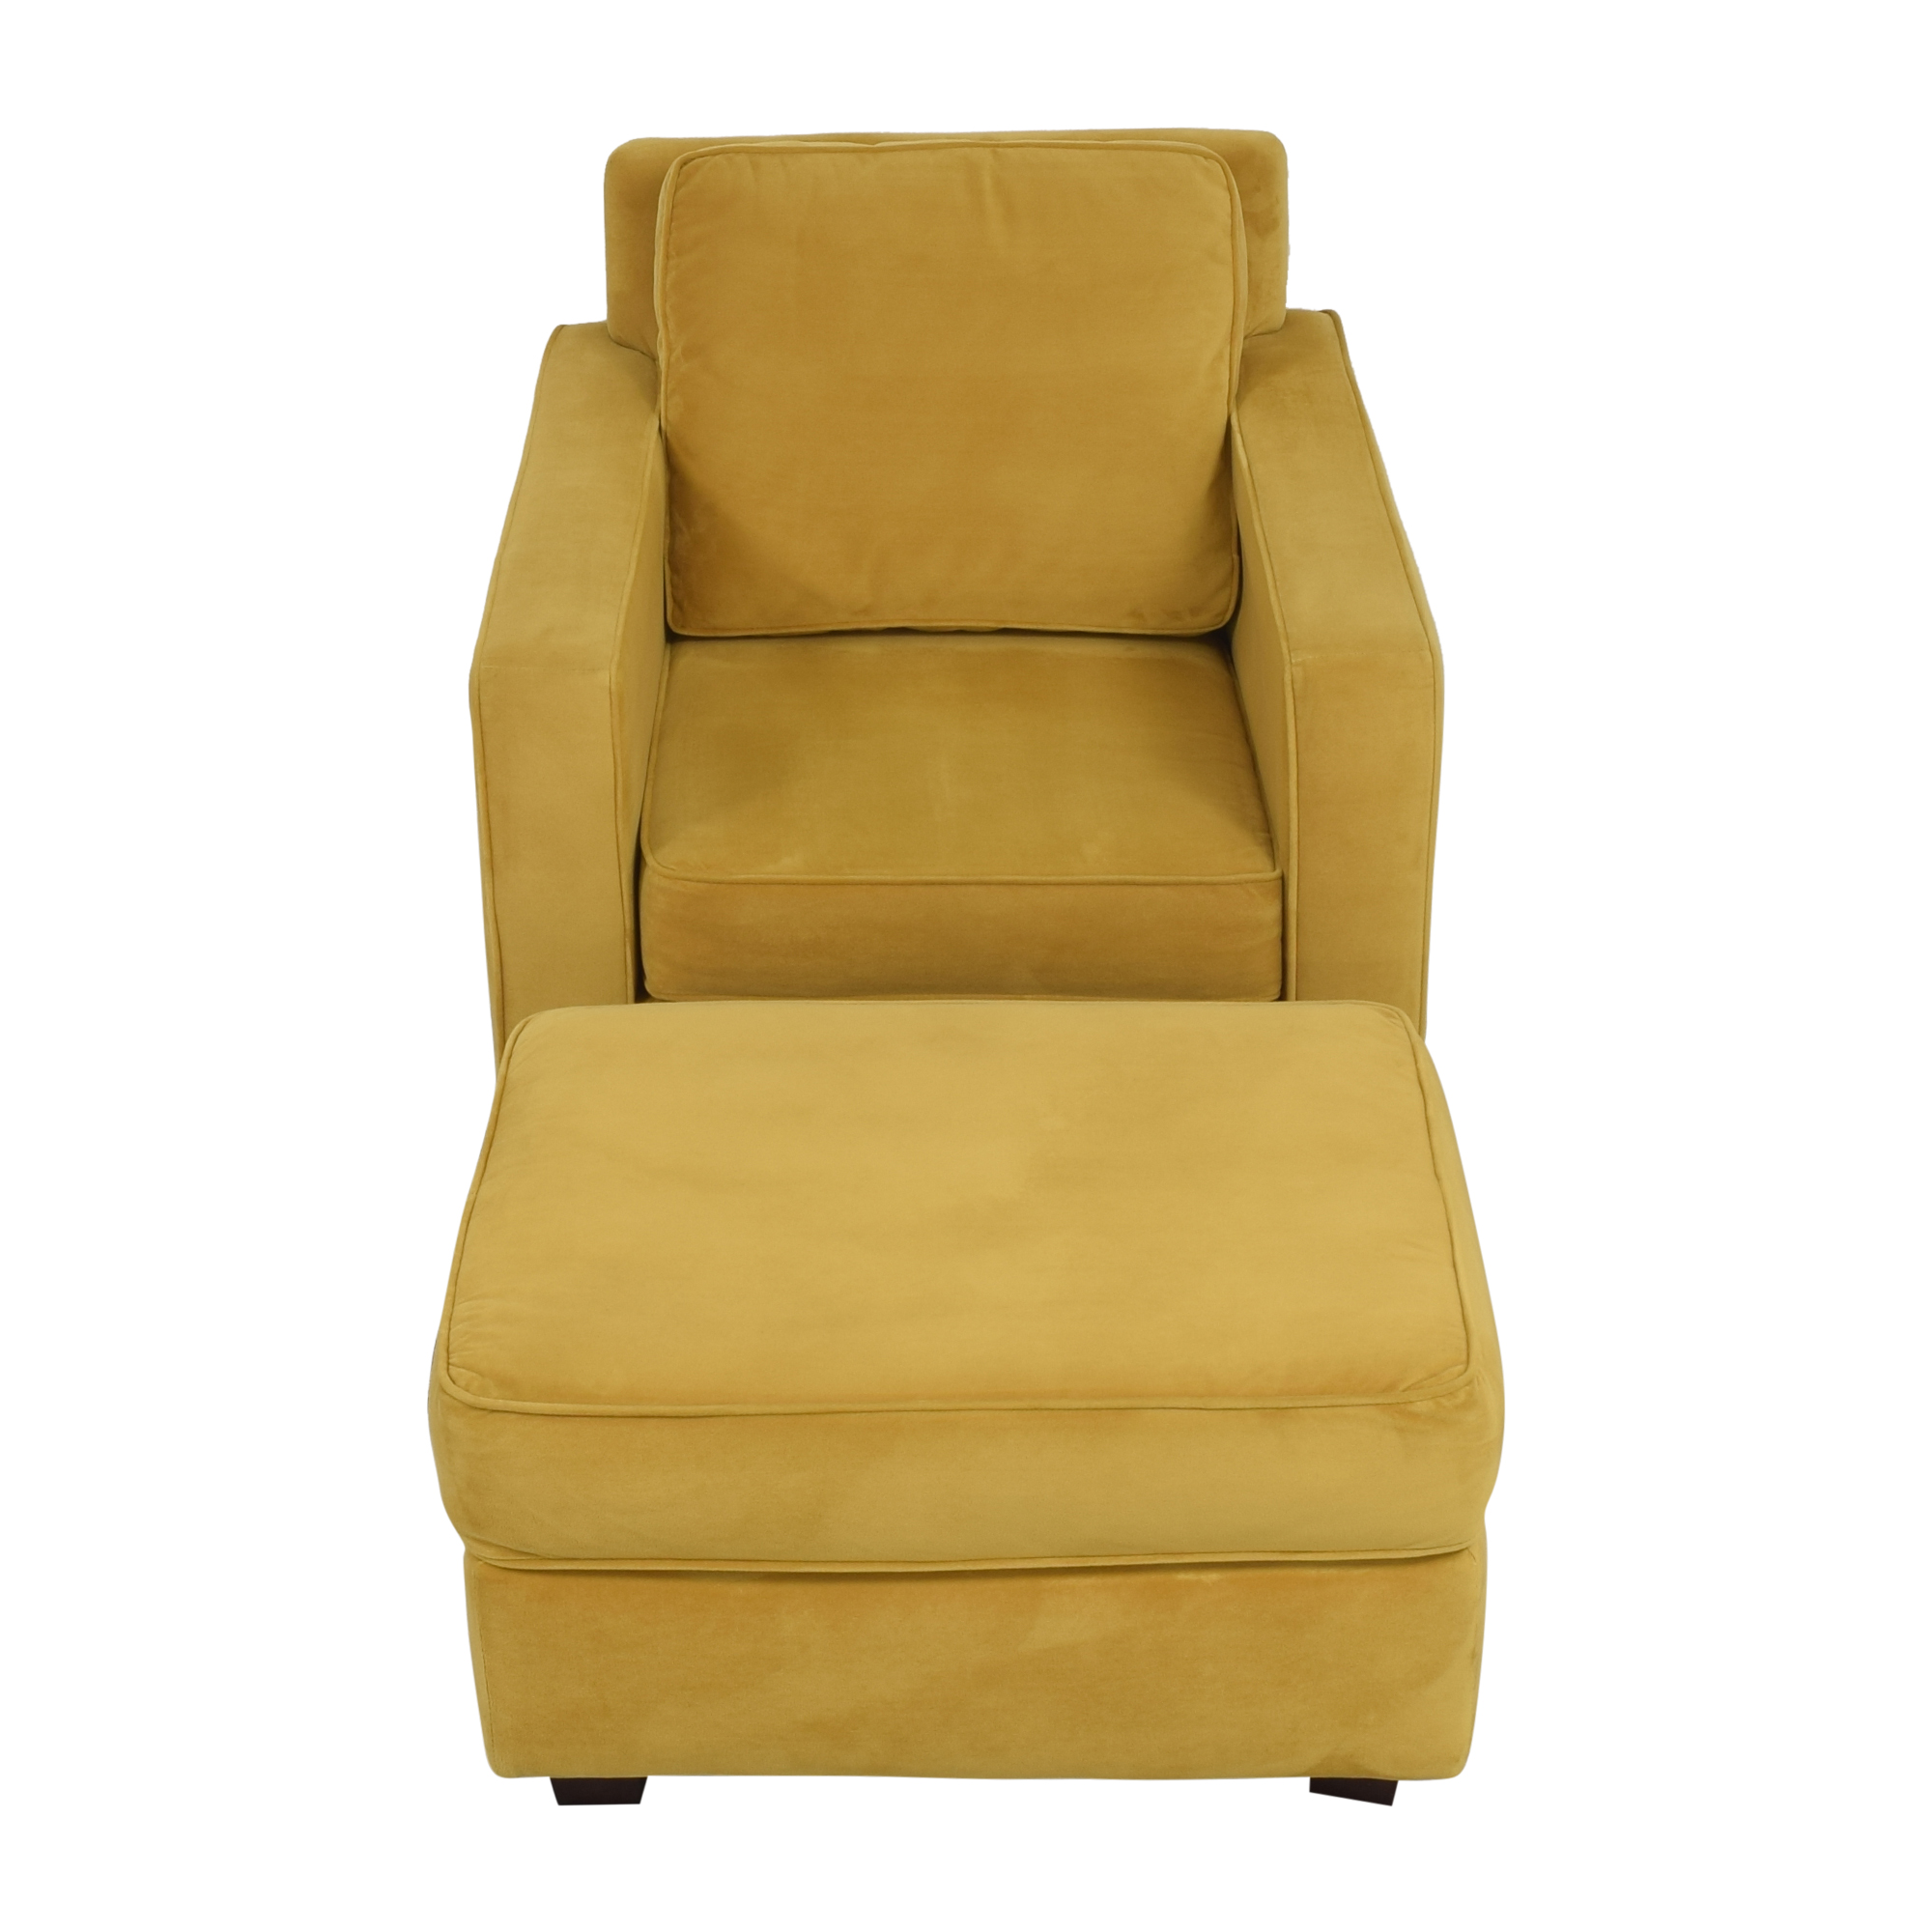 West Elm West Elm Henry Armchair with Ottoman price